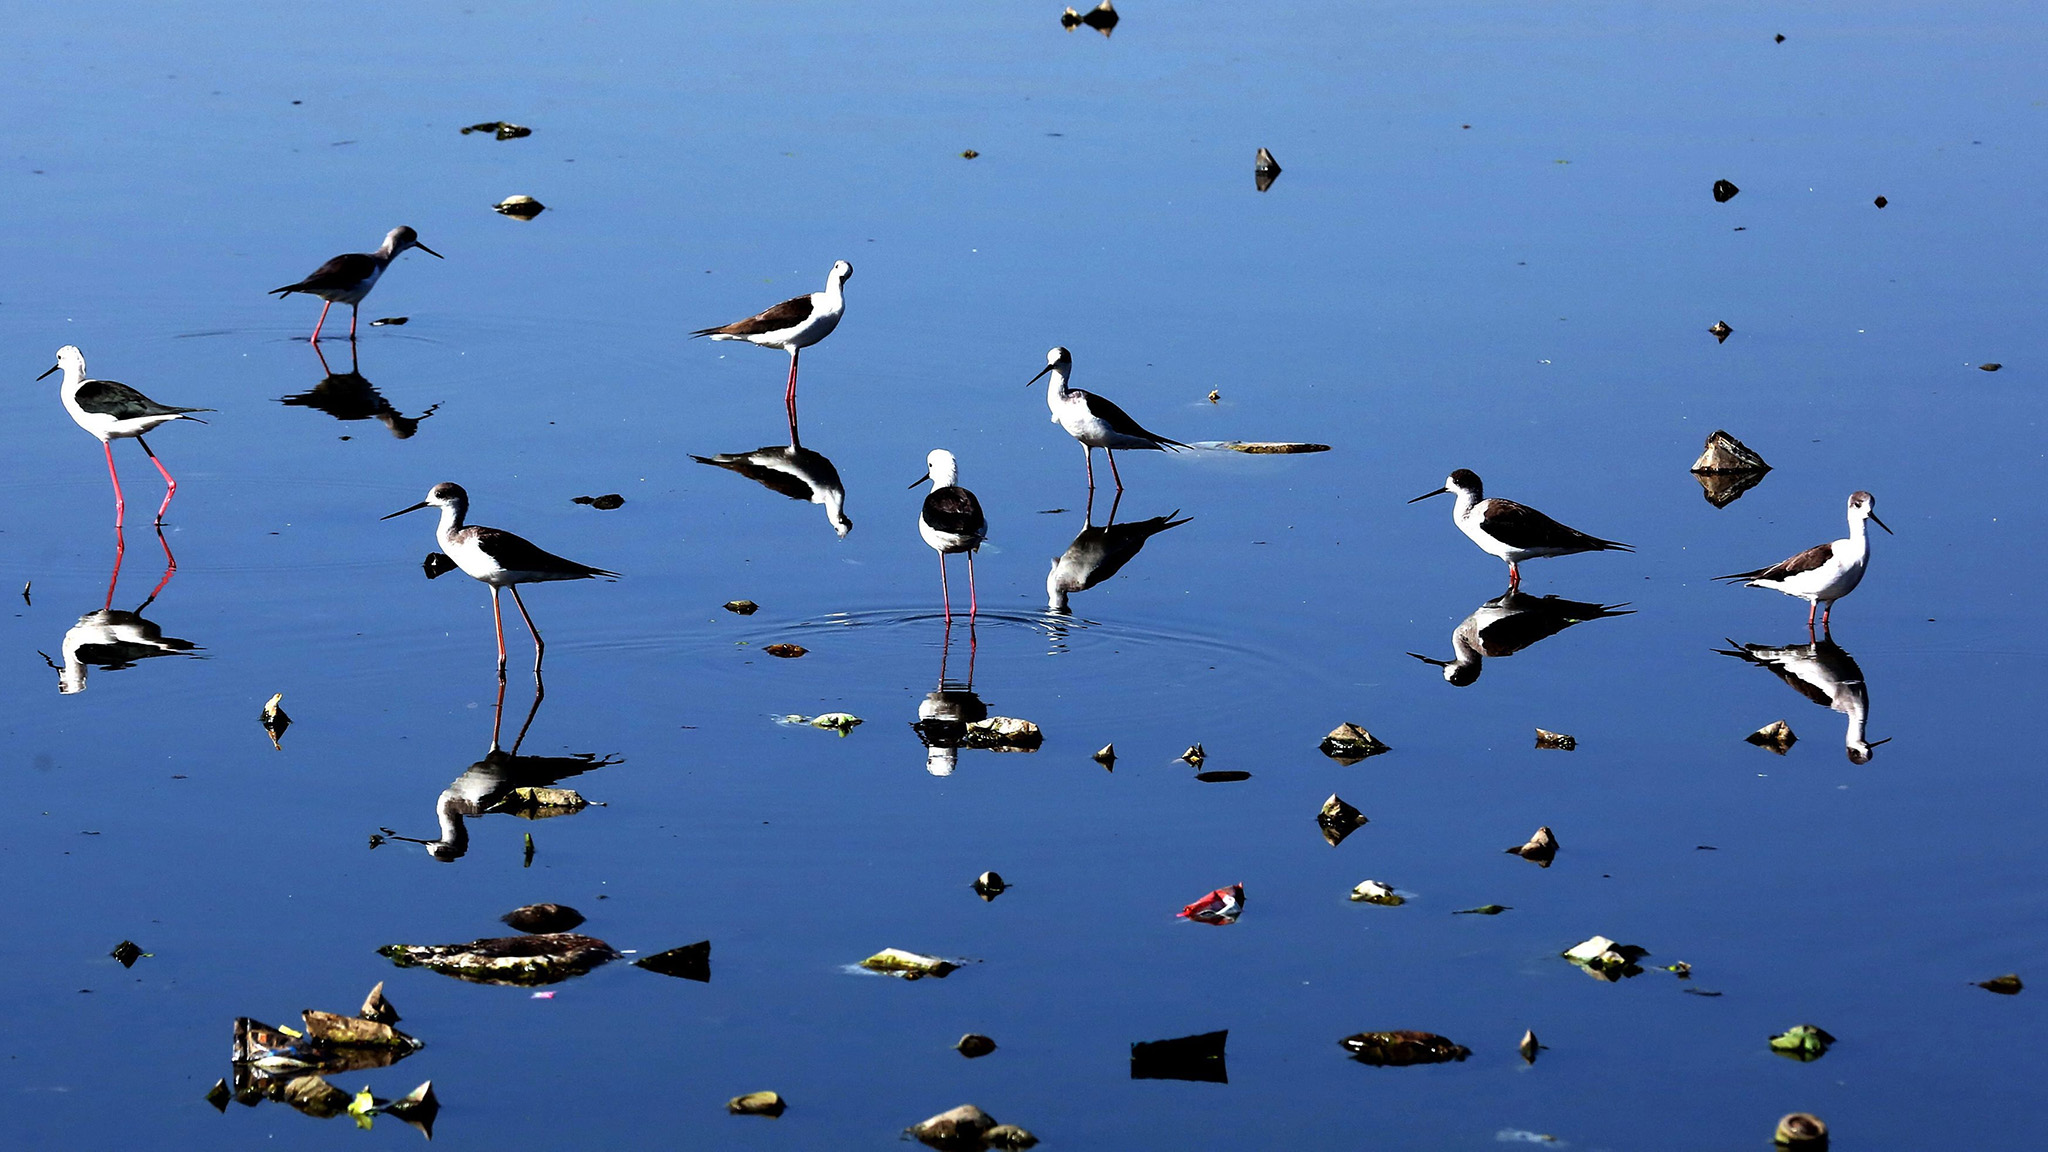 Black-winged Stilt migratory birds fly over the Shahpura lake on the onset of winter season in Bhopal, India, 25 November 2016. Every year, several different species of birds arrive at the lake in search for warmer areas.  EPA/SANJEEV GUPTA